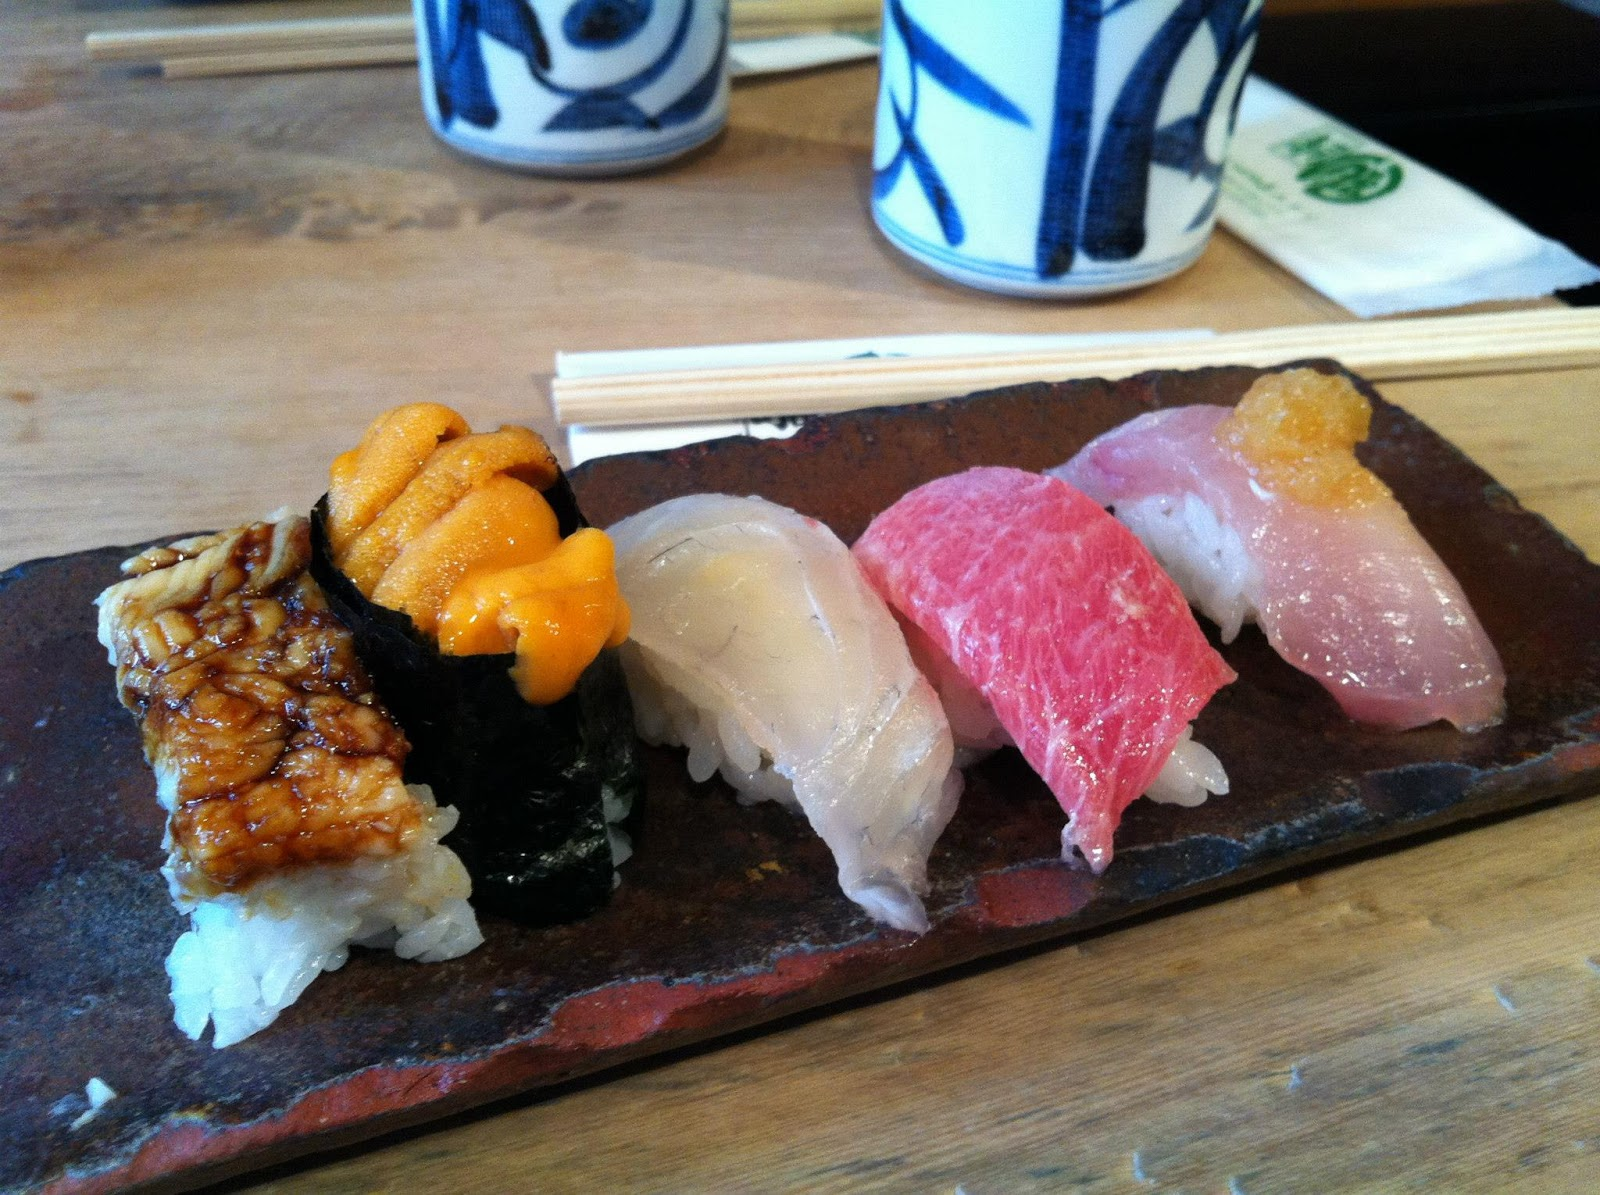 Midori - a set for sushi: the dish should be not only tasty, but also beautiful